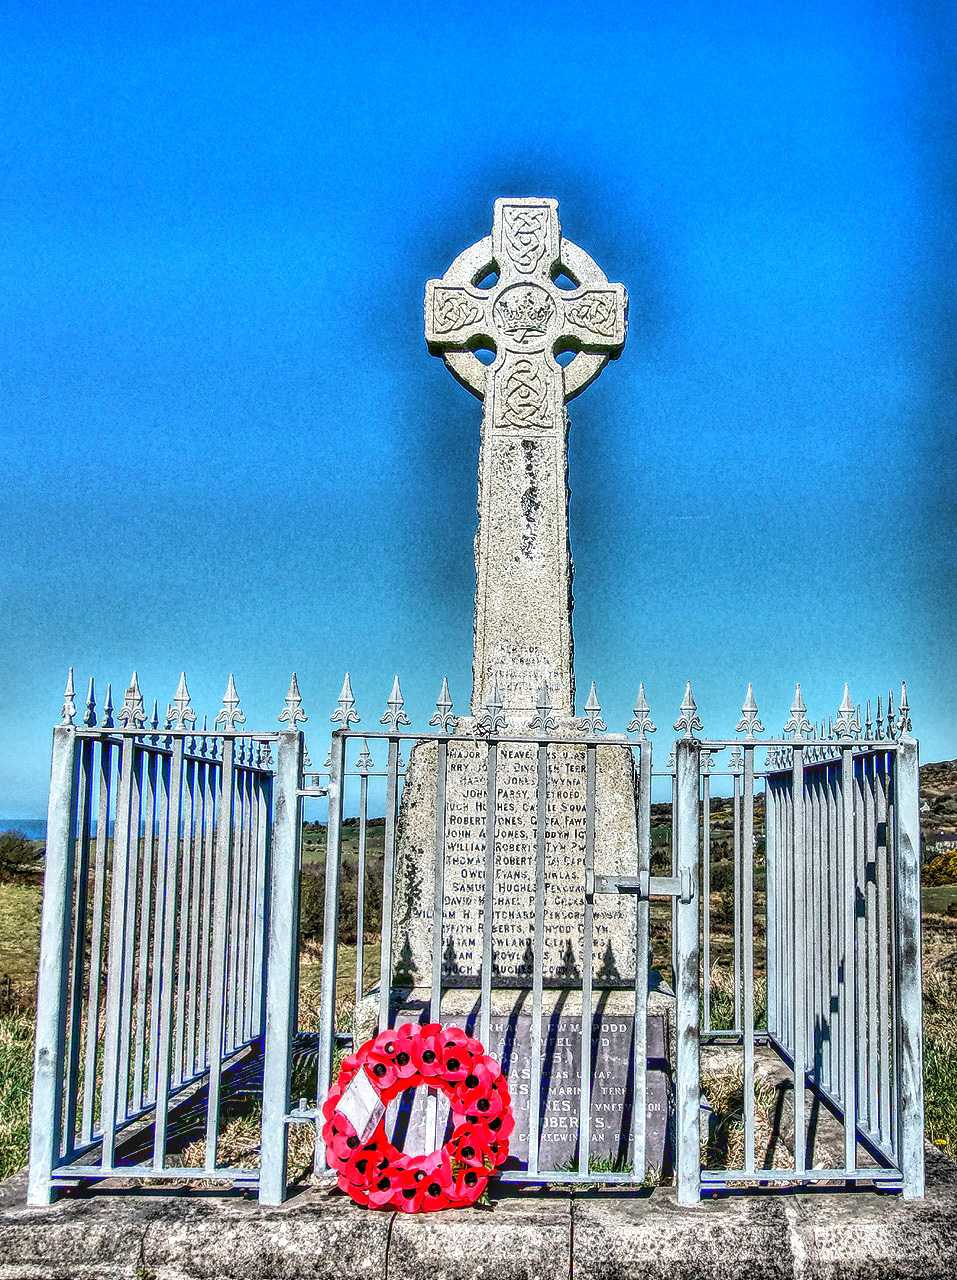 Anglesey, Penysarn War Memorial and Railings in hdr